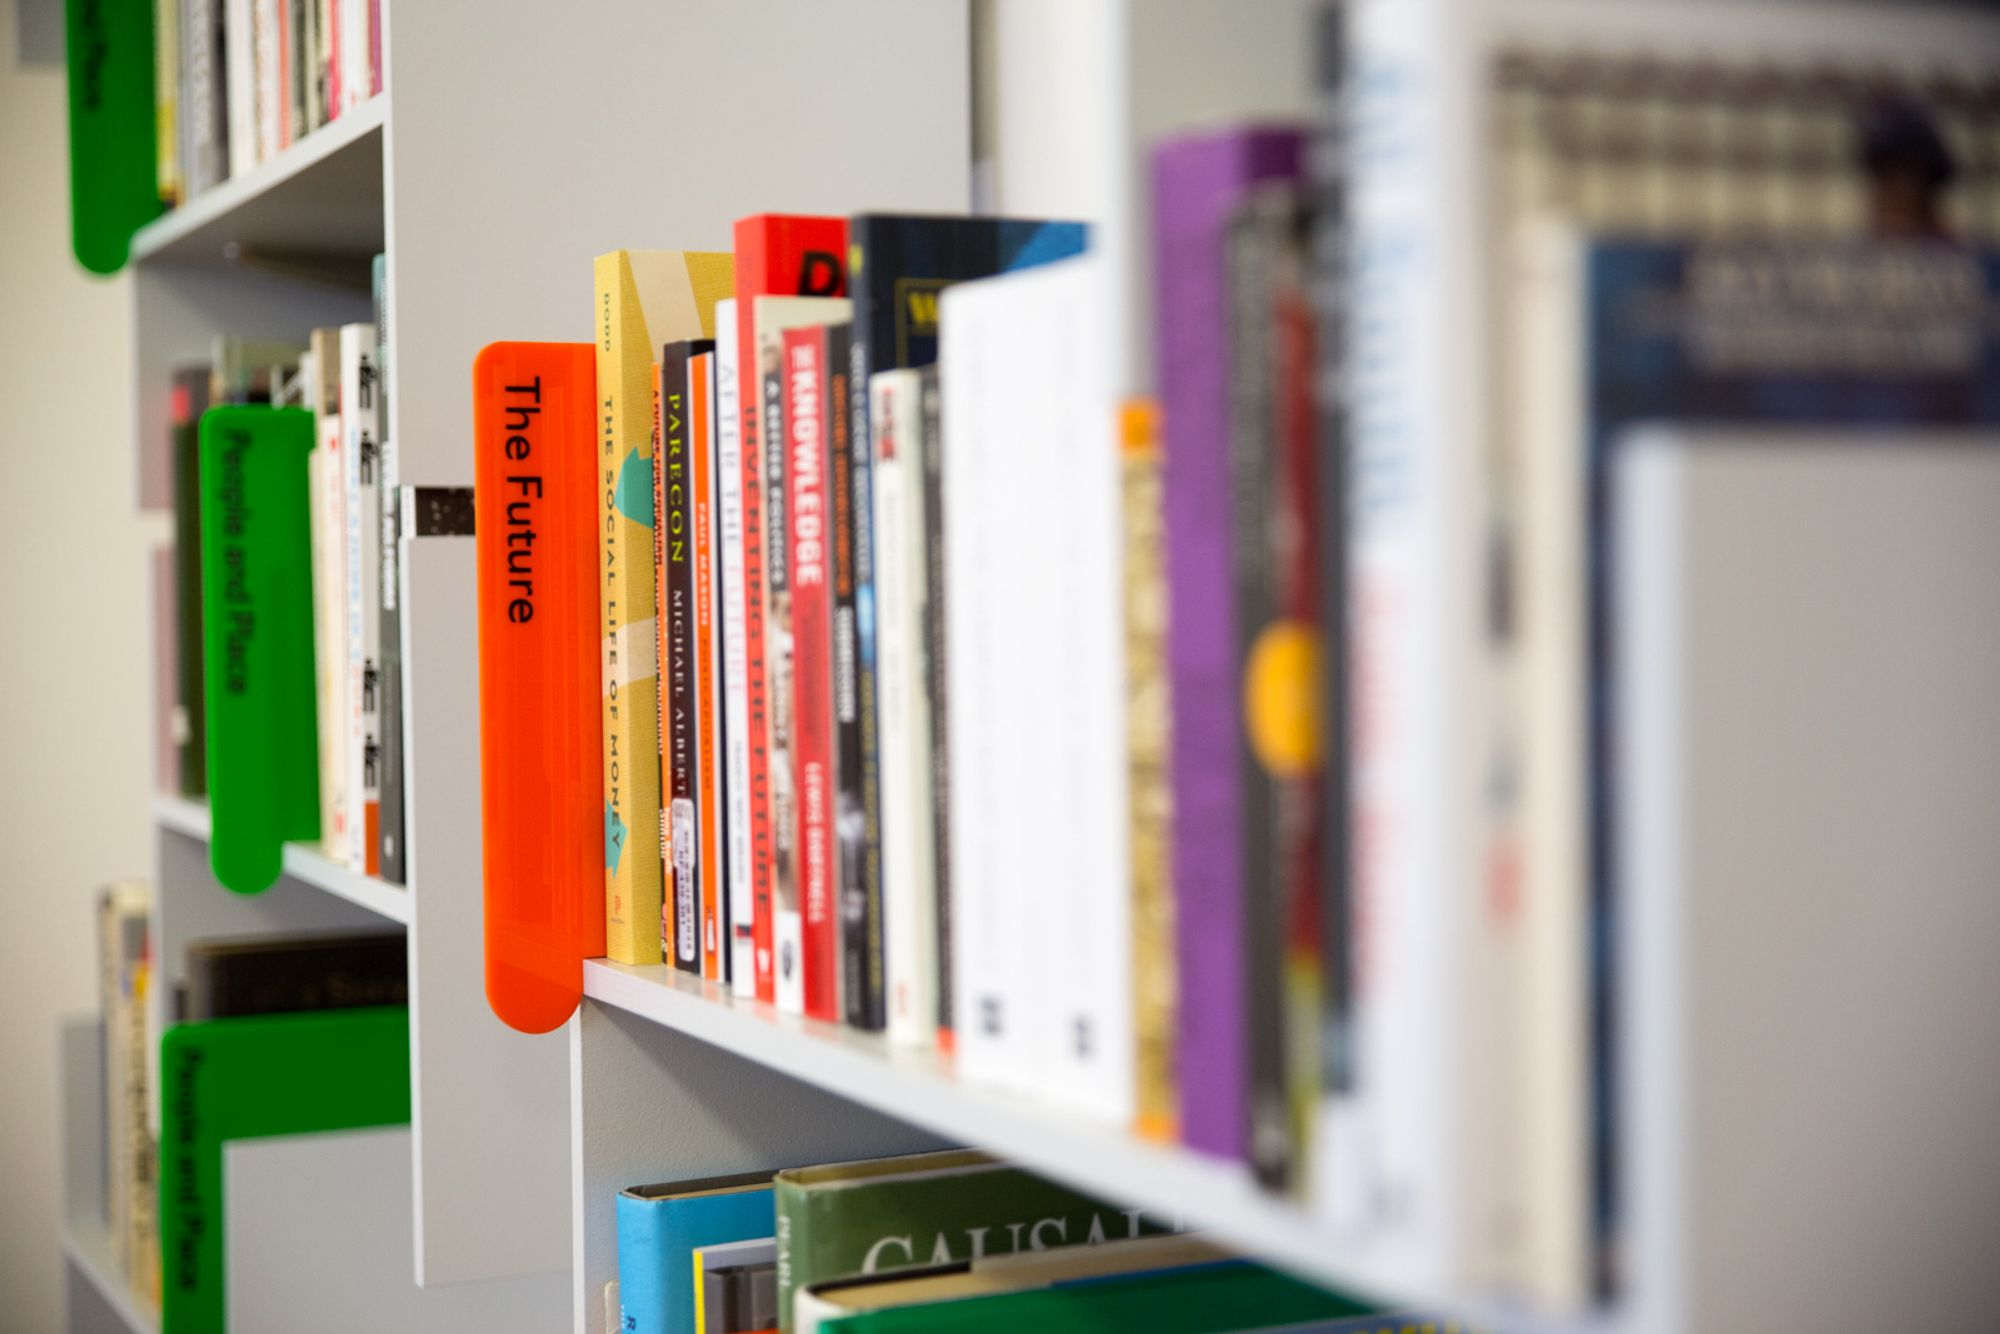 Wall mounted bookshelves full of books, viewed side-on, and several book dividers in view. The nearer one is orange and says The Future.